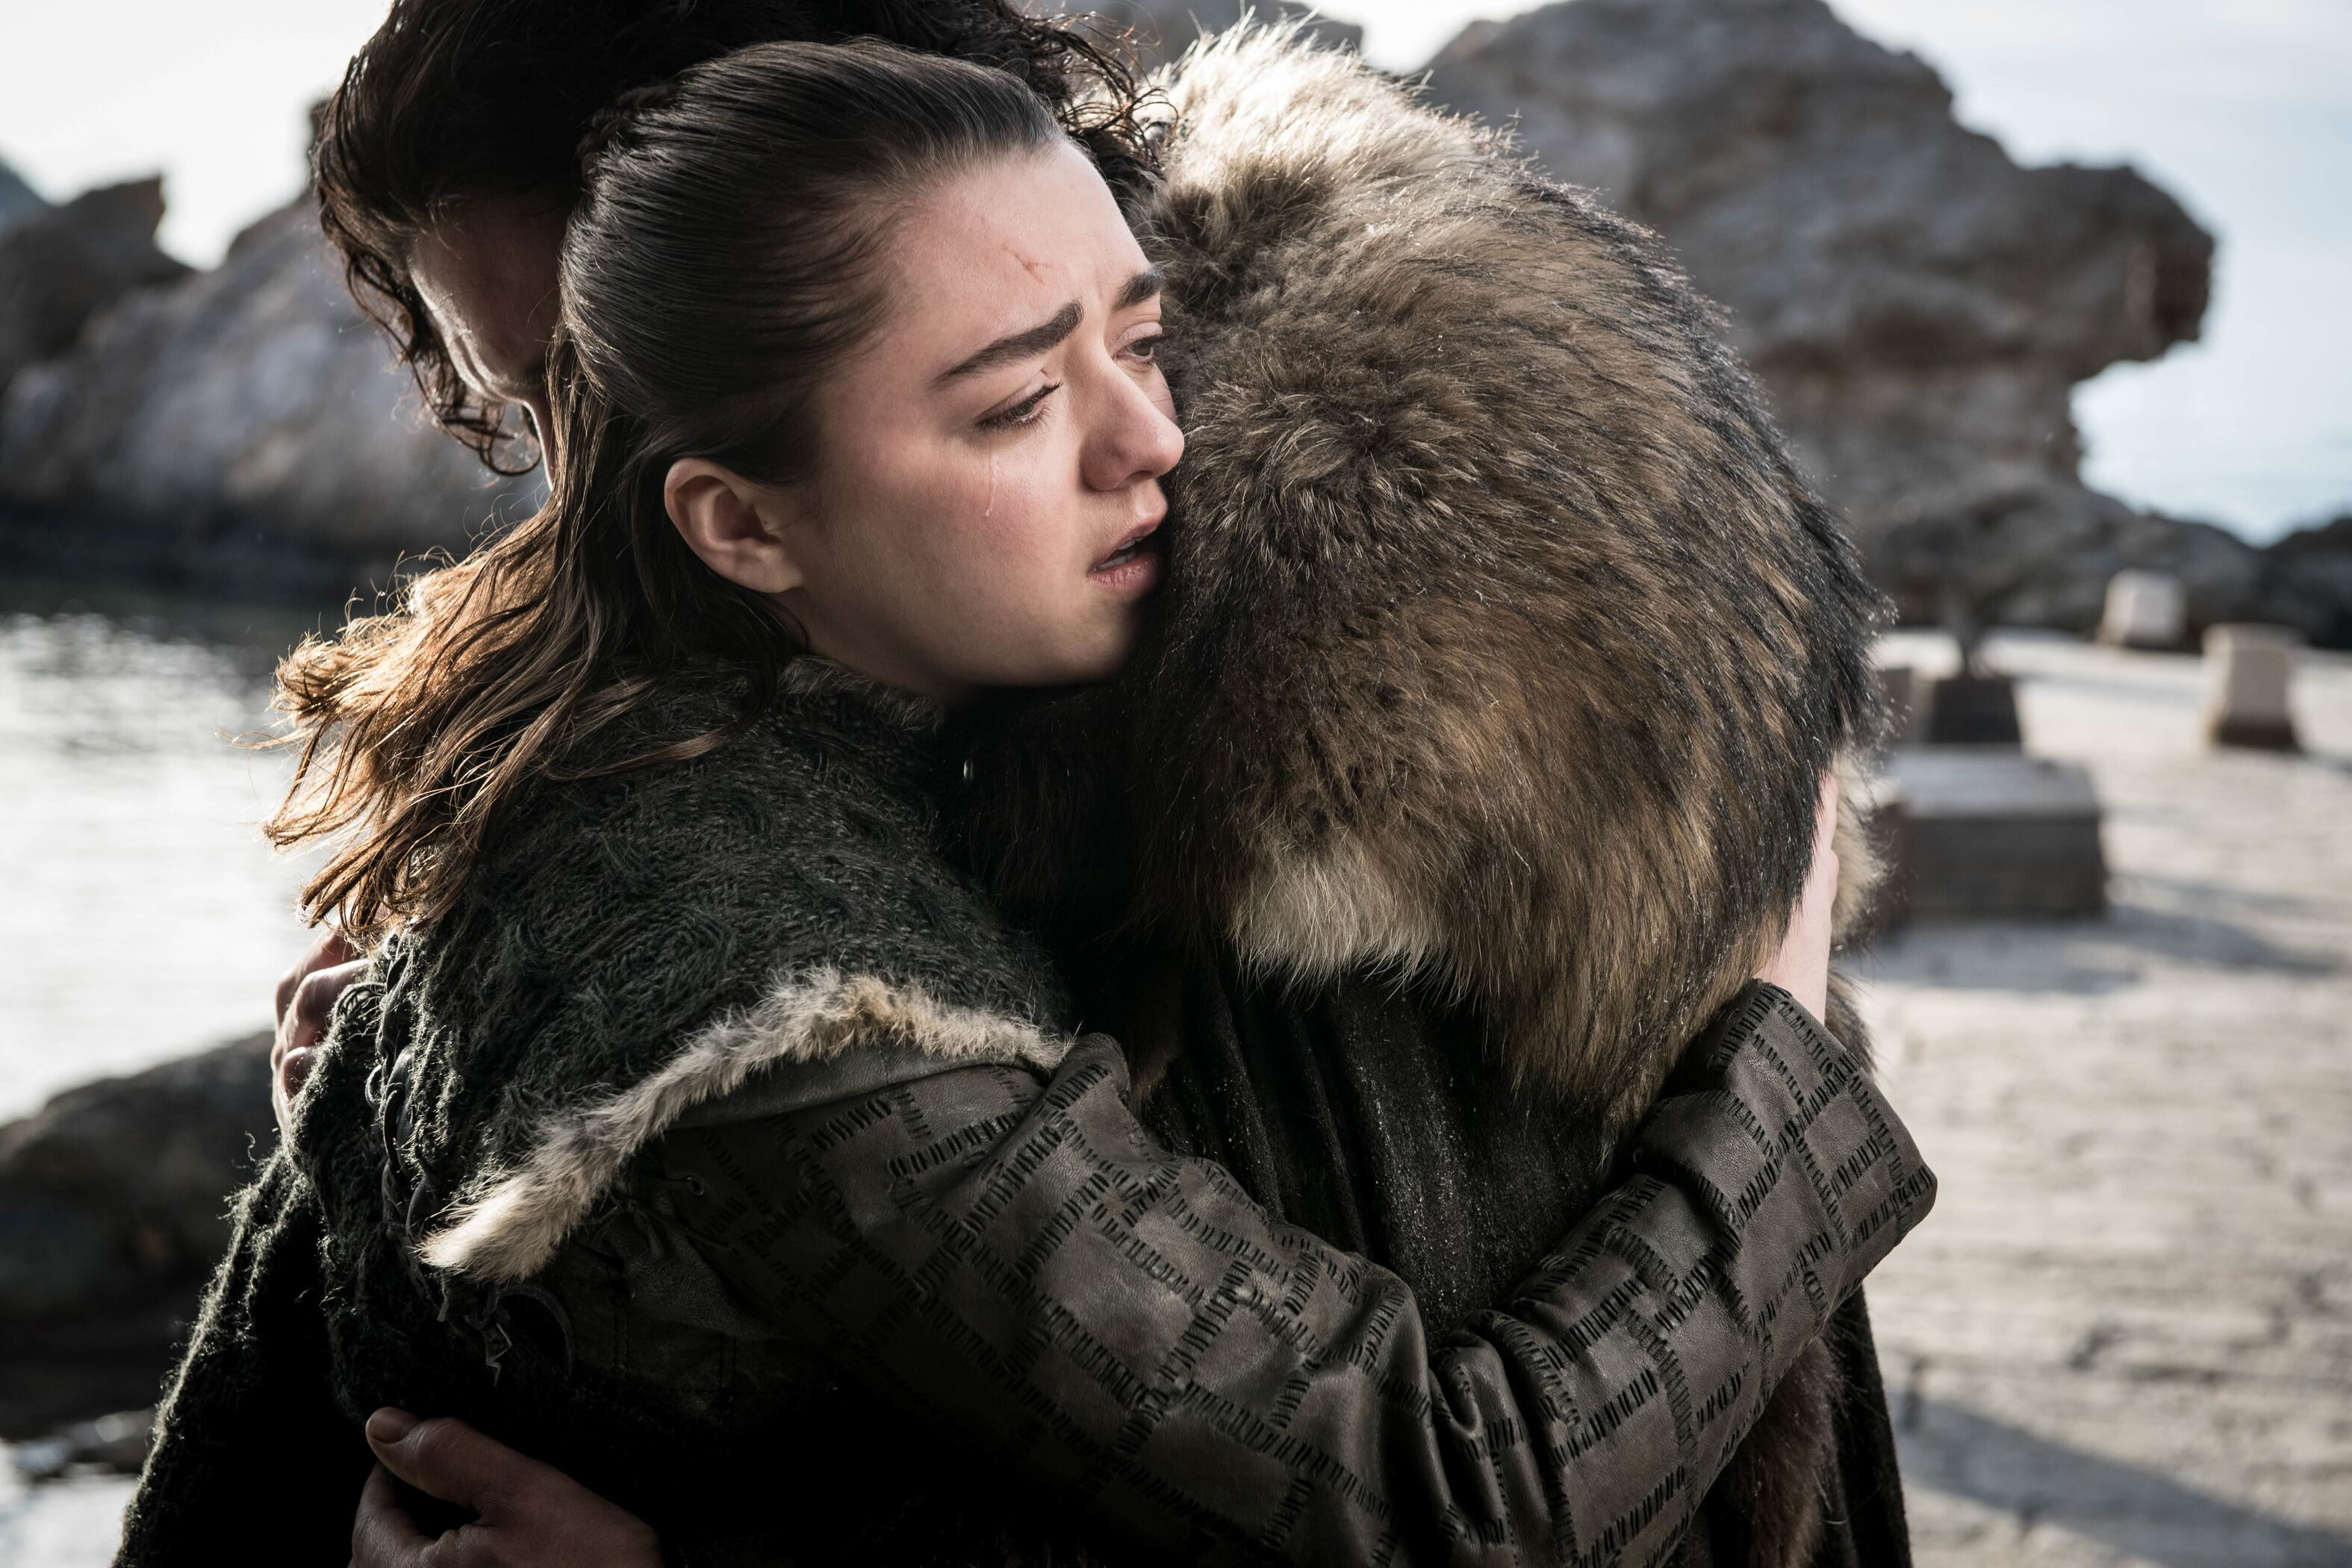 Game of Thrones seasons 1-8 available on demand on Sky and NOW TV